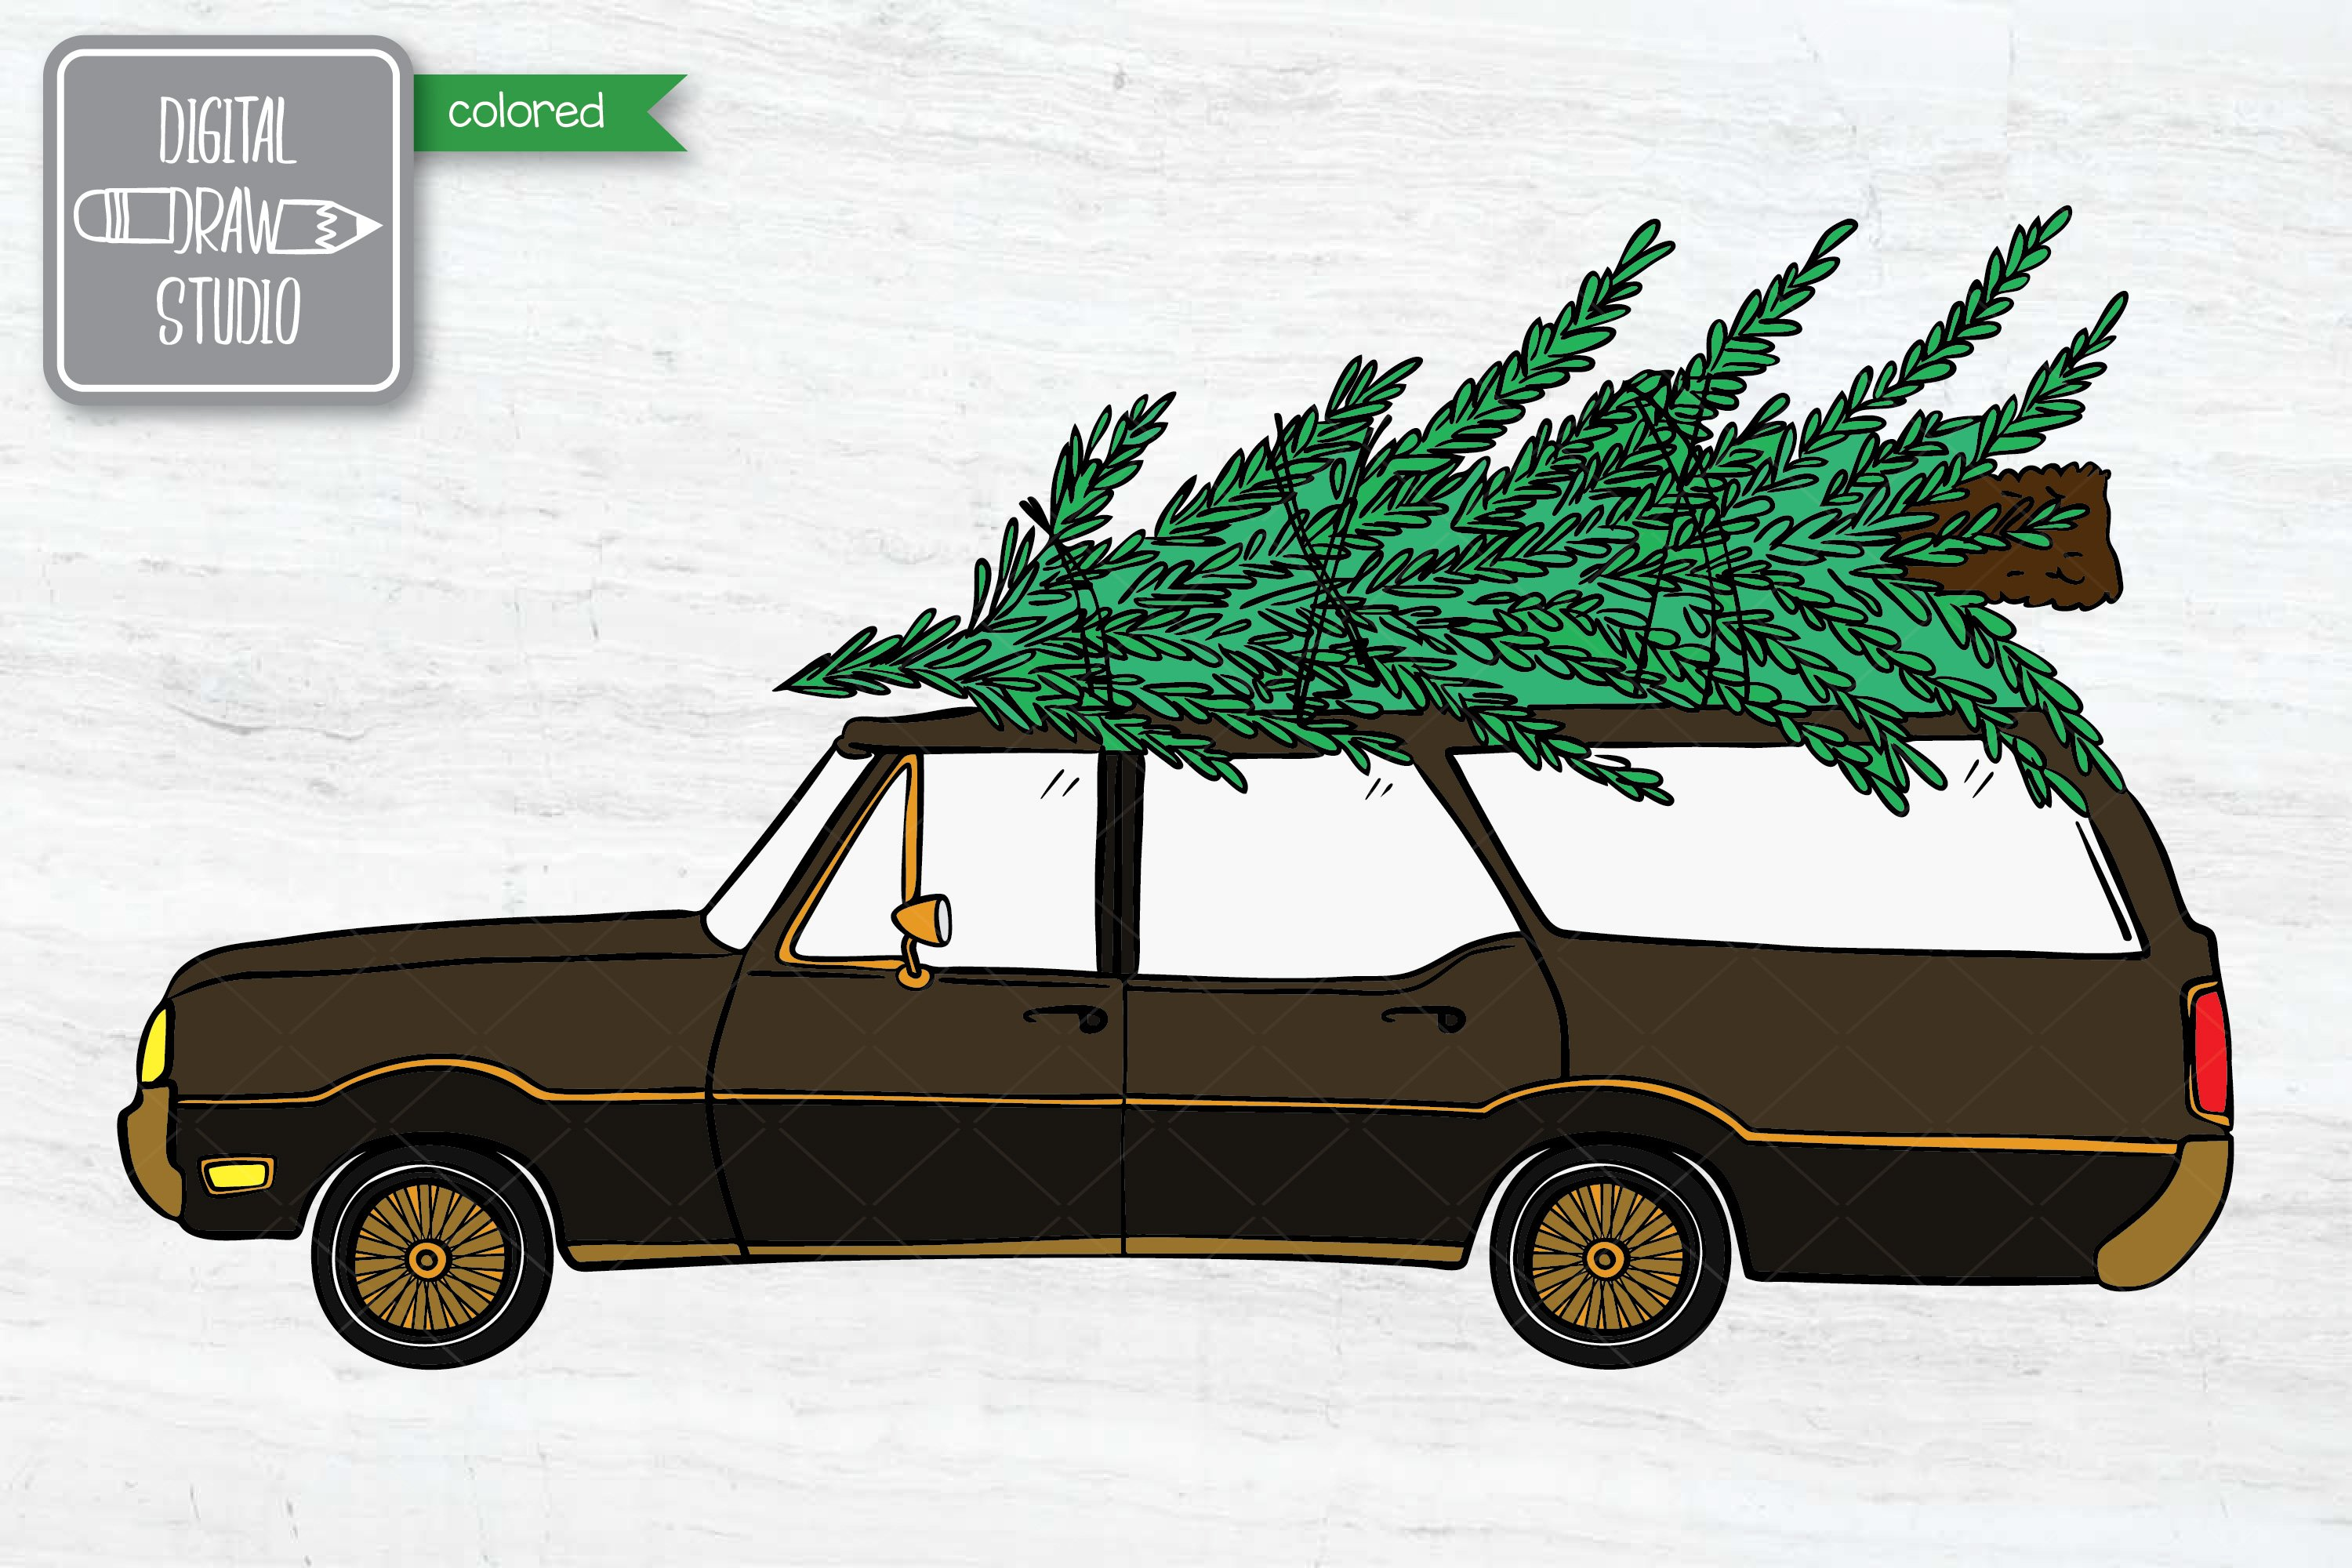 Color Station Wagon Car Christmas | Tree on Roof Top Holiday example image 5